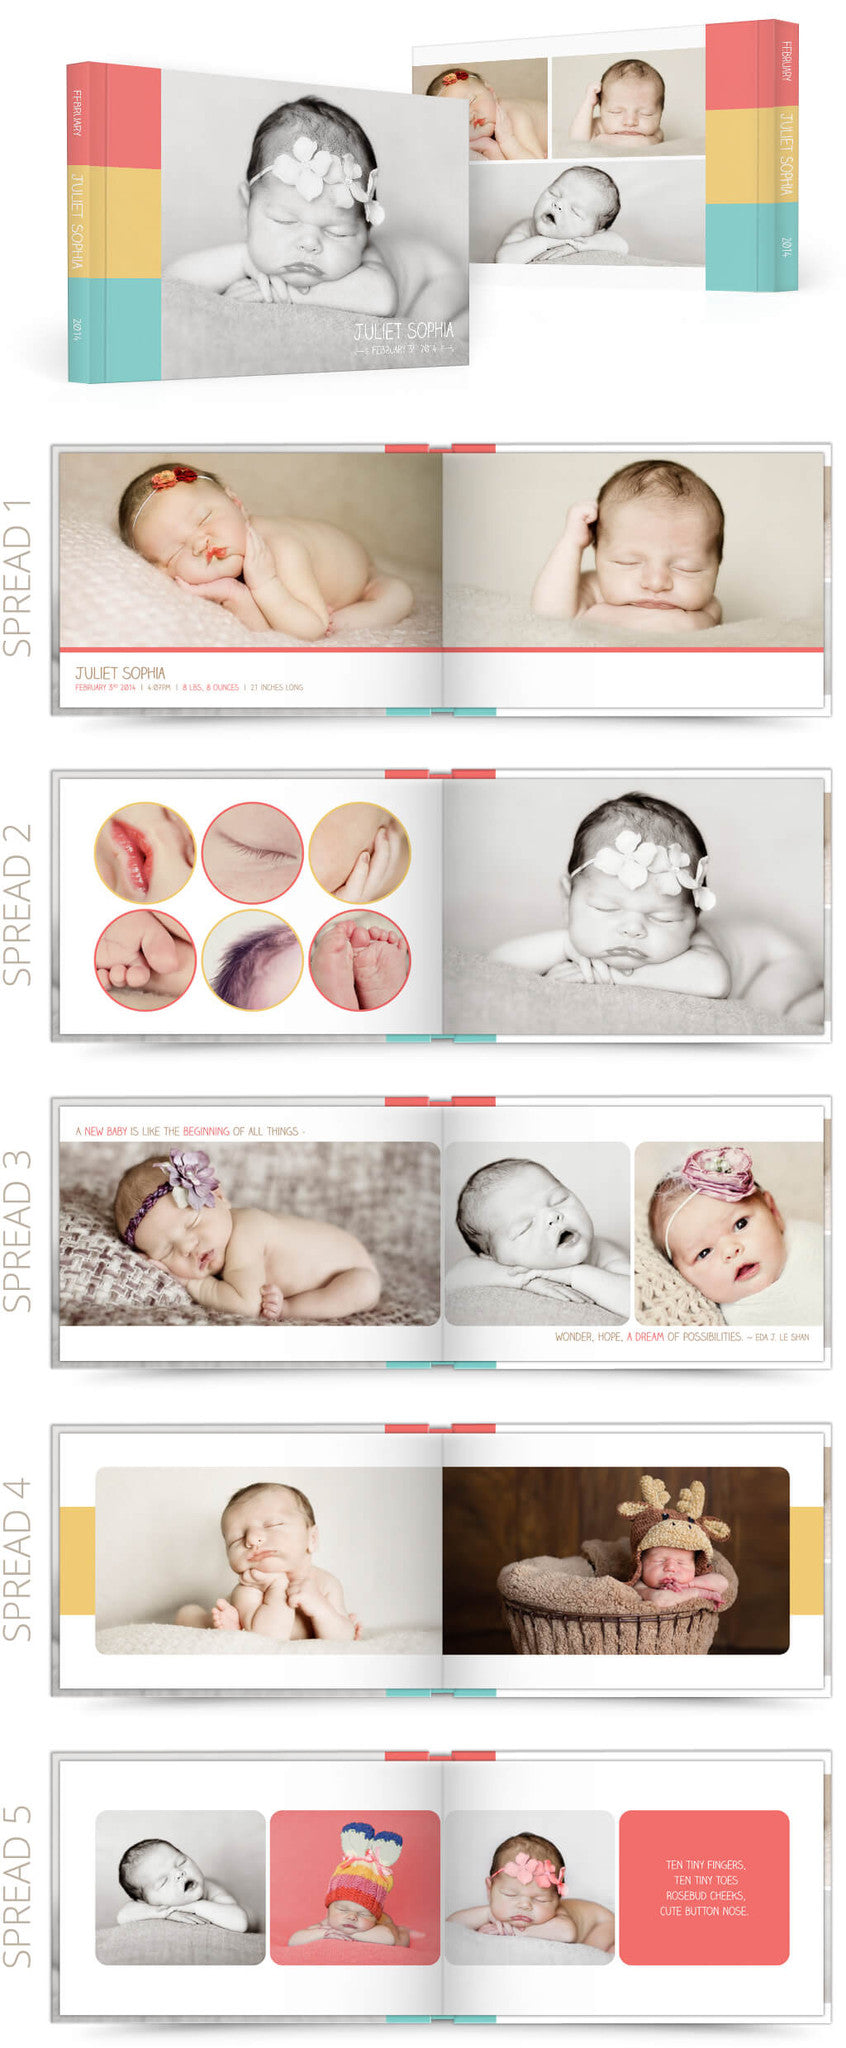 Quotable 12x8 Album Photoshop Templates